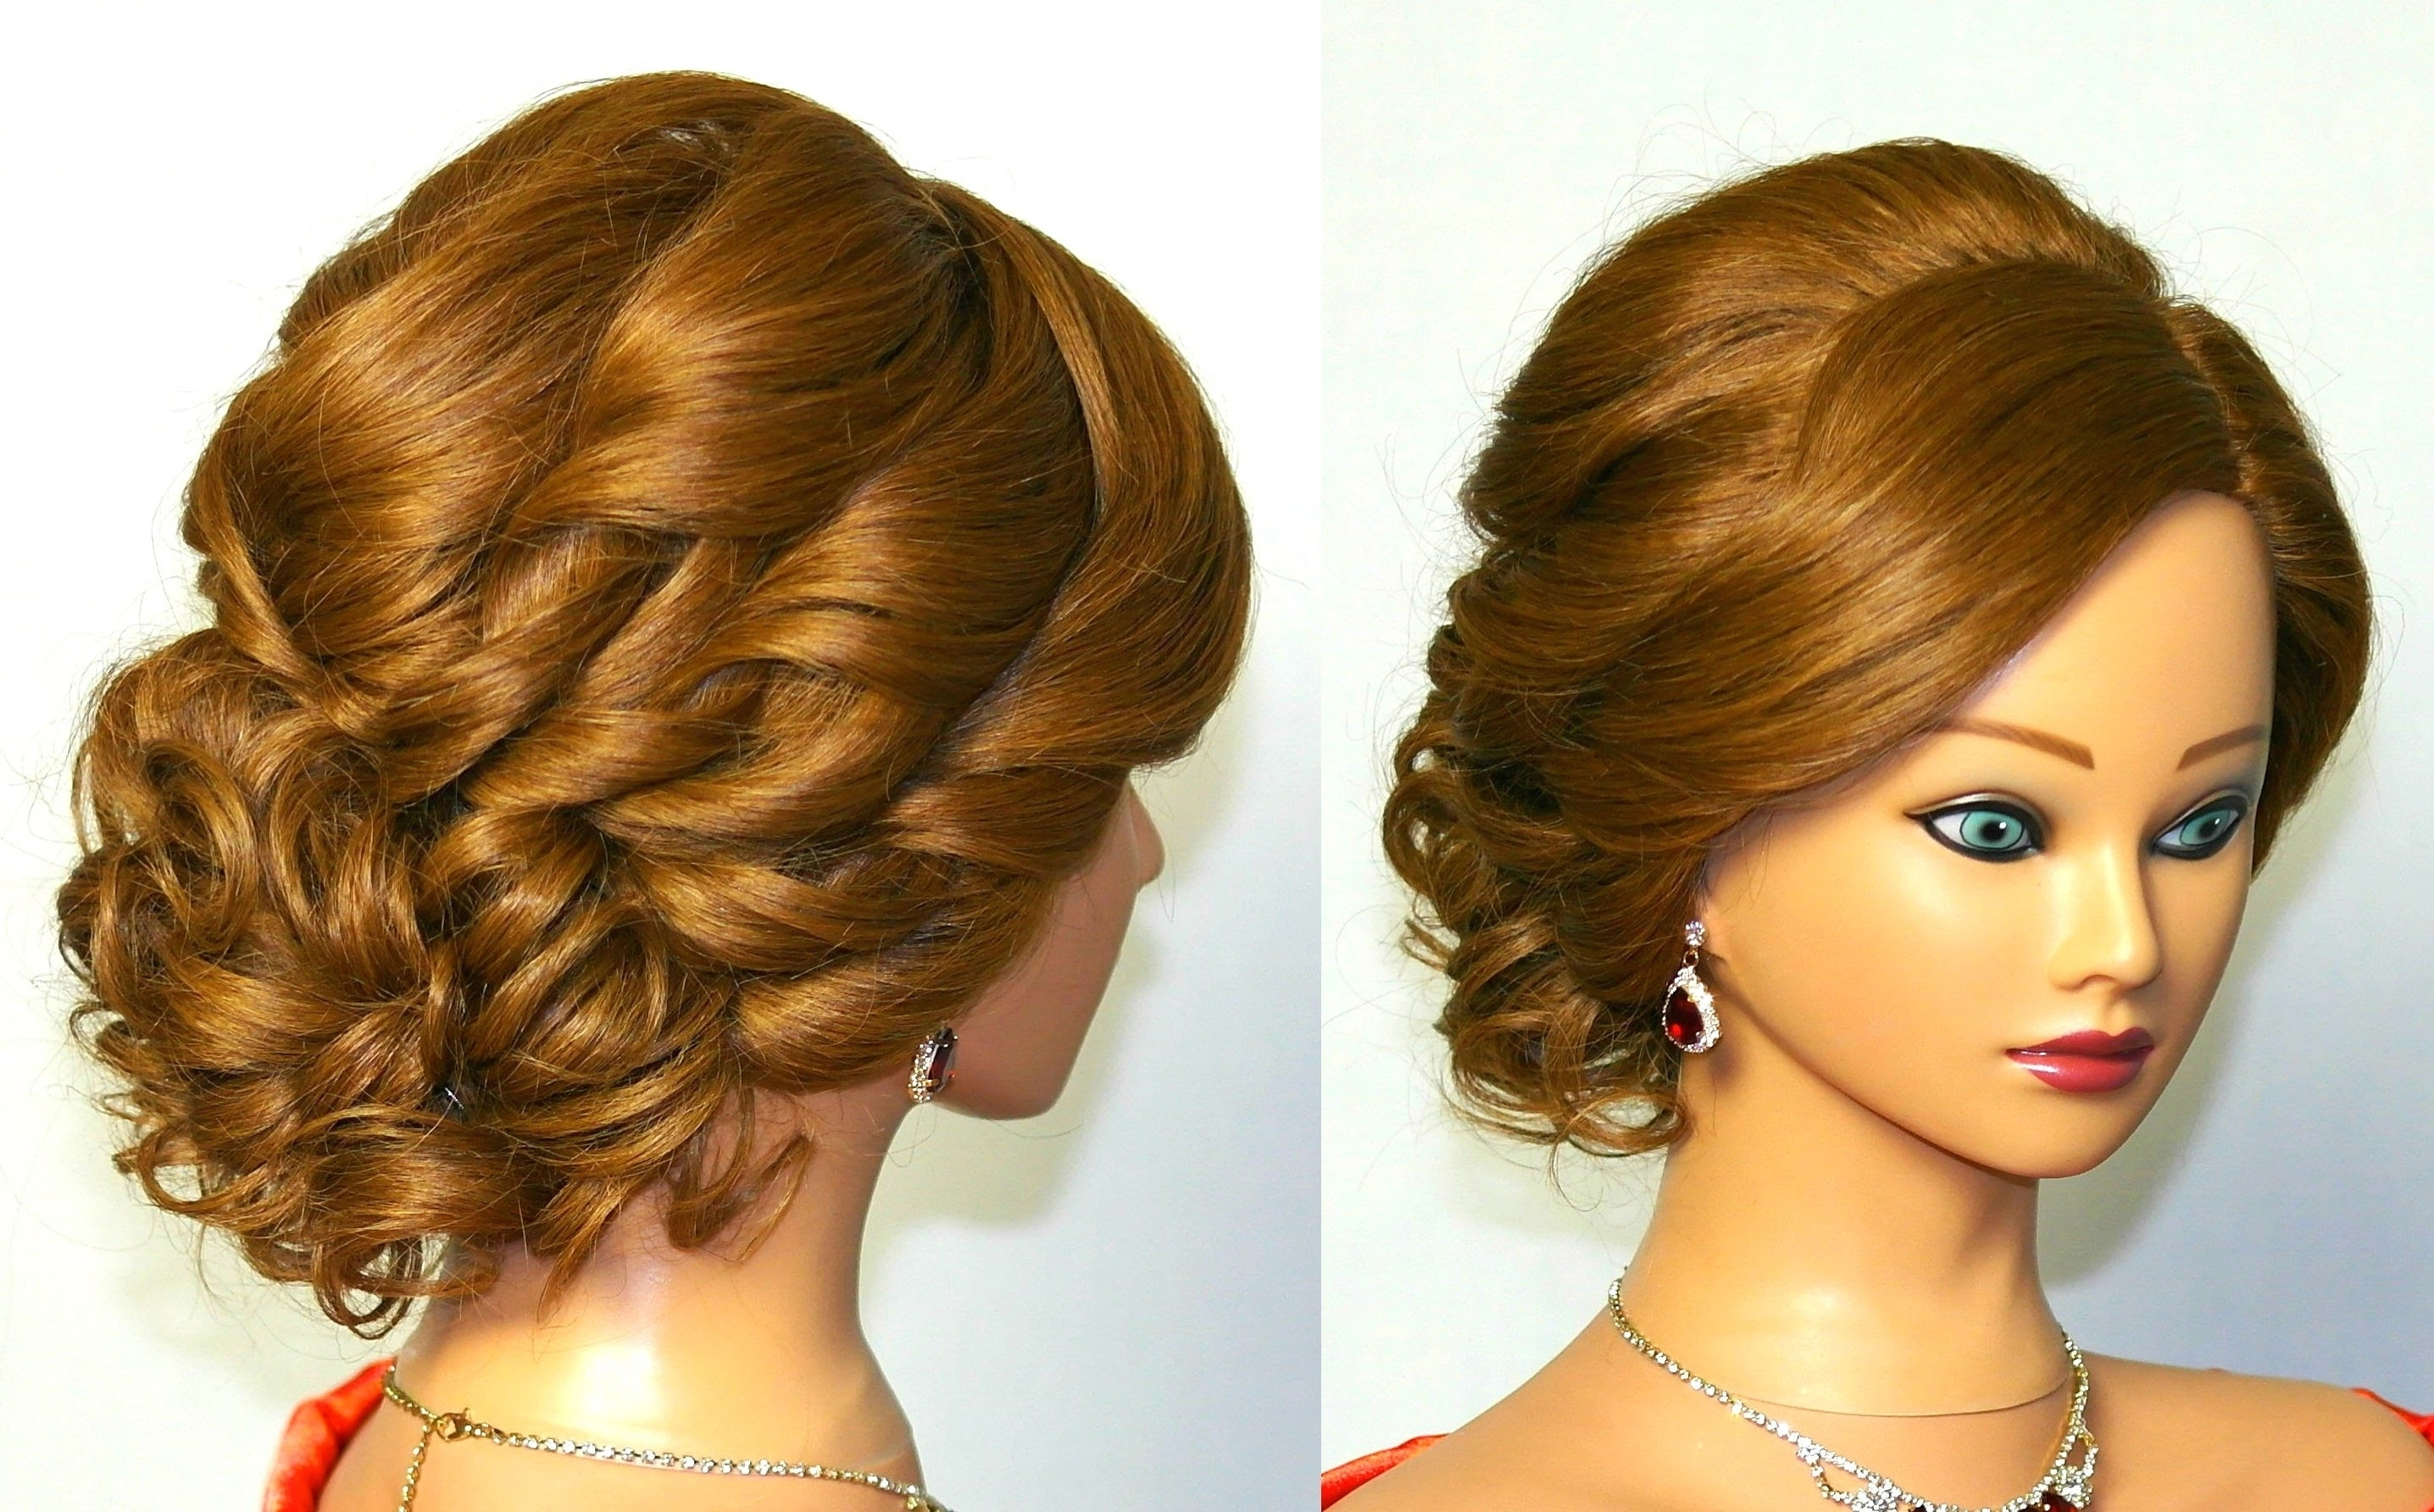 Updos Hairstyles For Medium Hair – Hairstyle Picture Magz Intended For Curly Updos For Medium Hair (View 13 of 15)